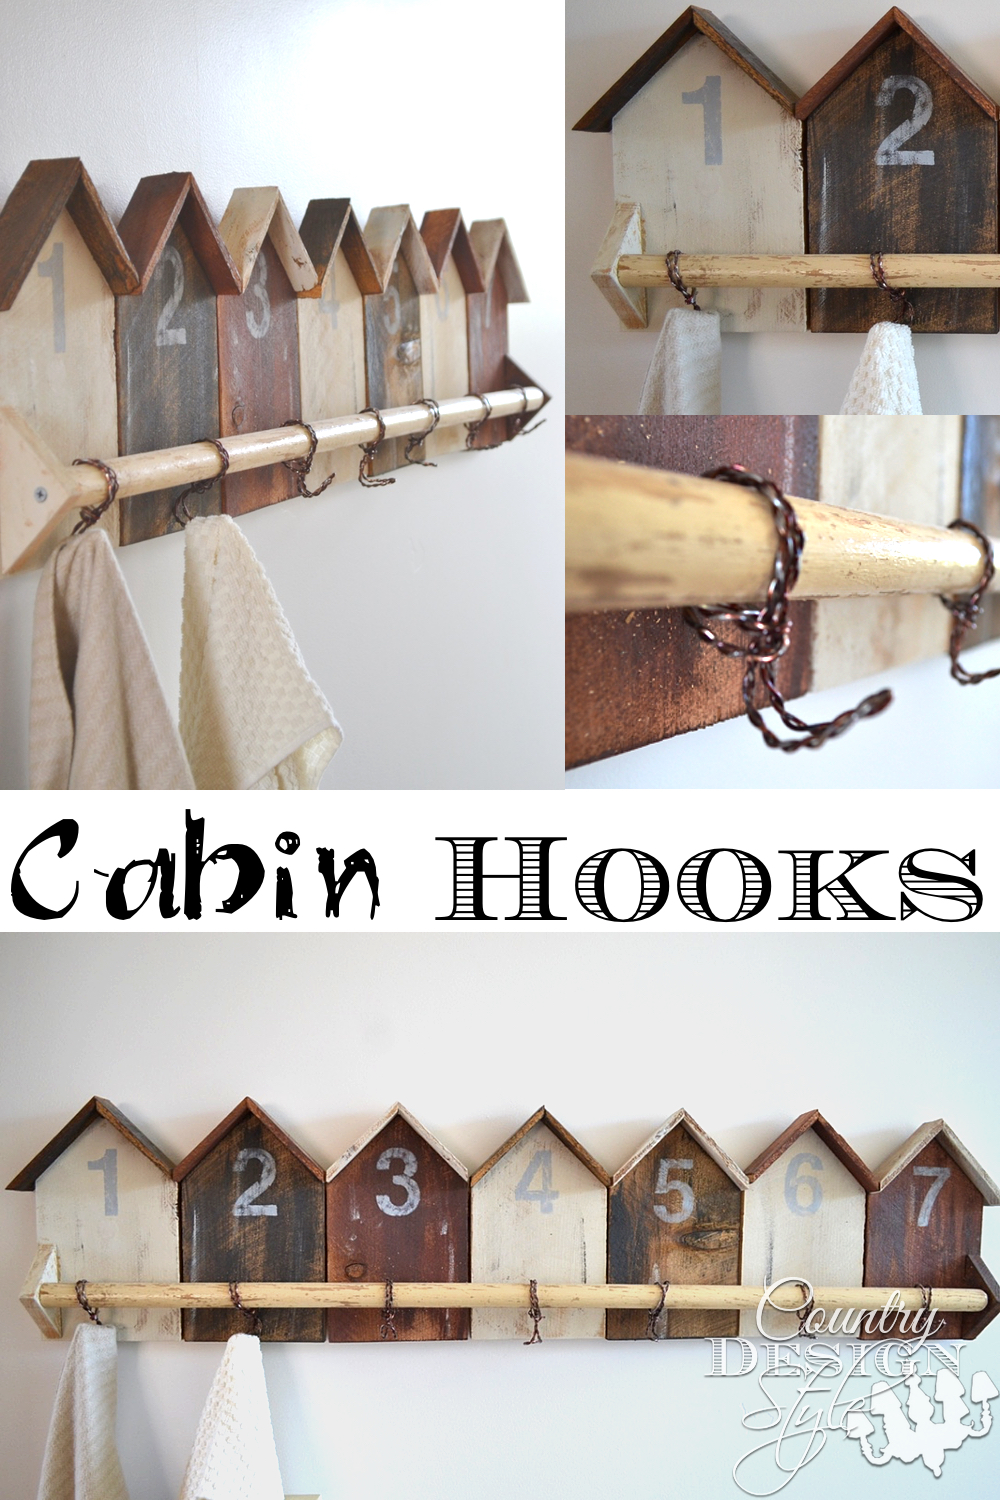 cabin-hooks-country-design-style-pn2